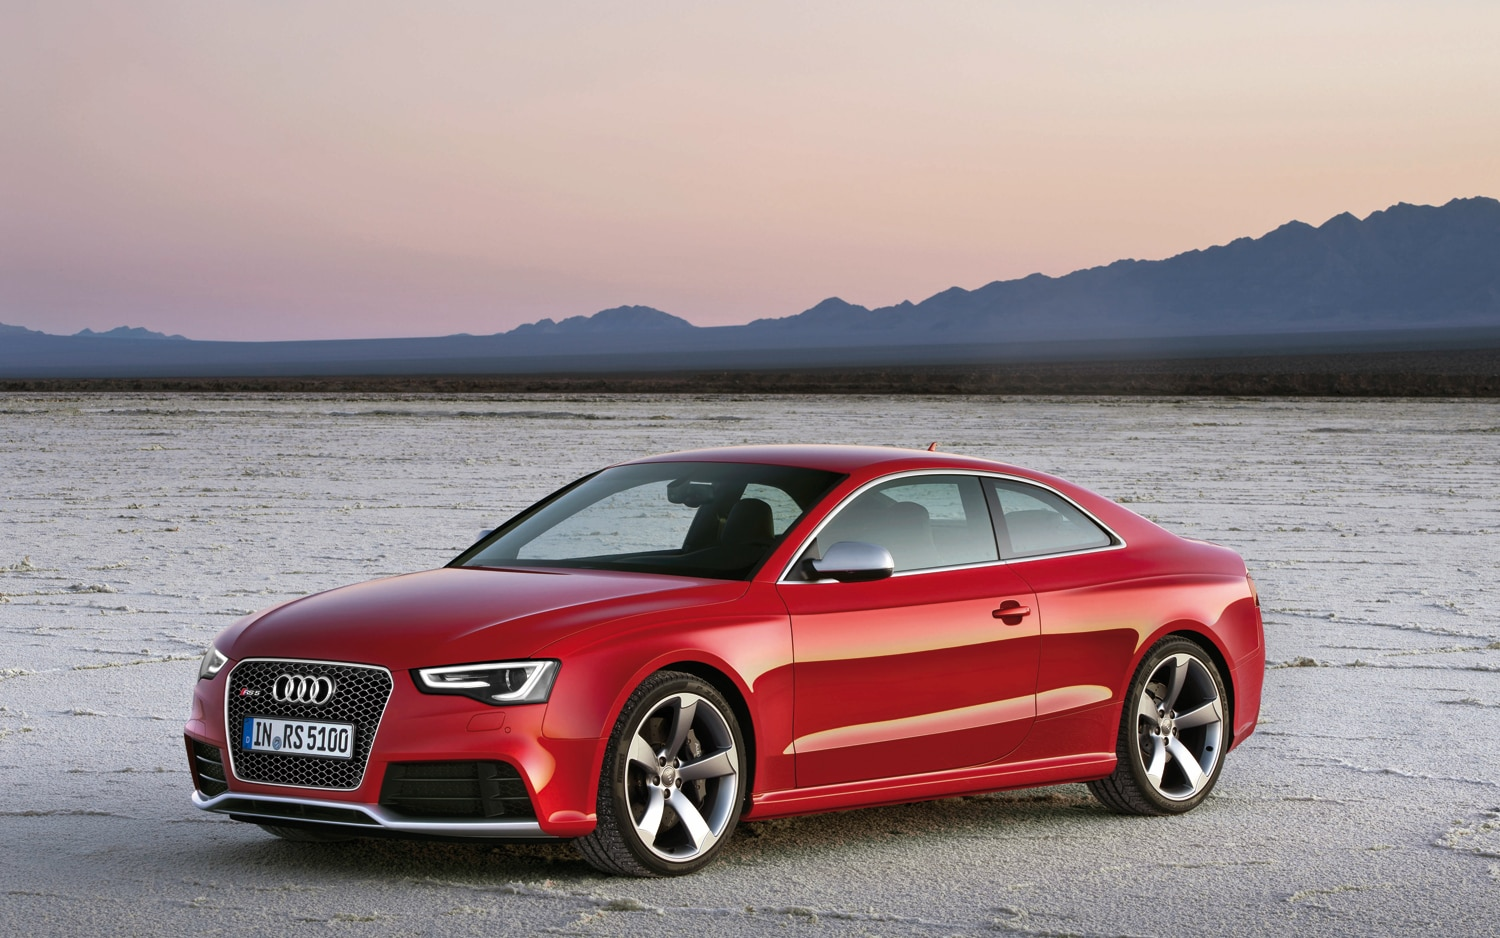 First Drive: 2013 Audi RS5